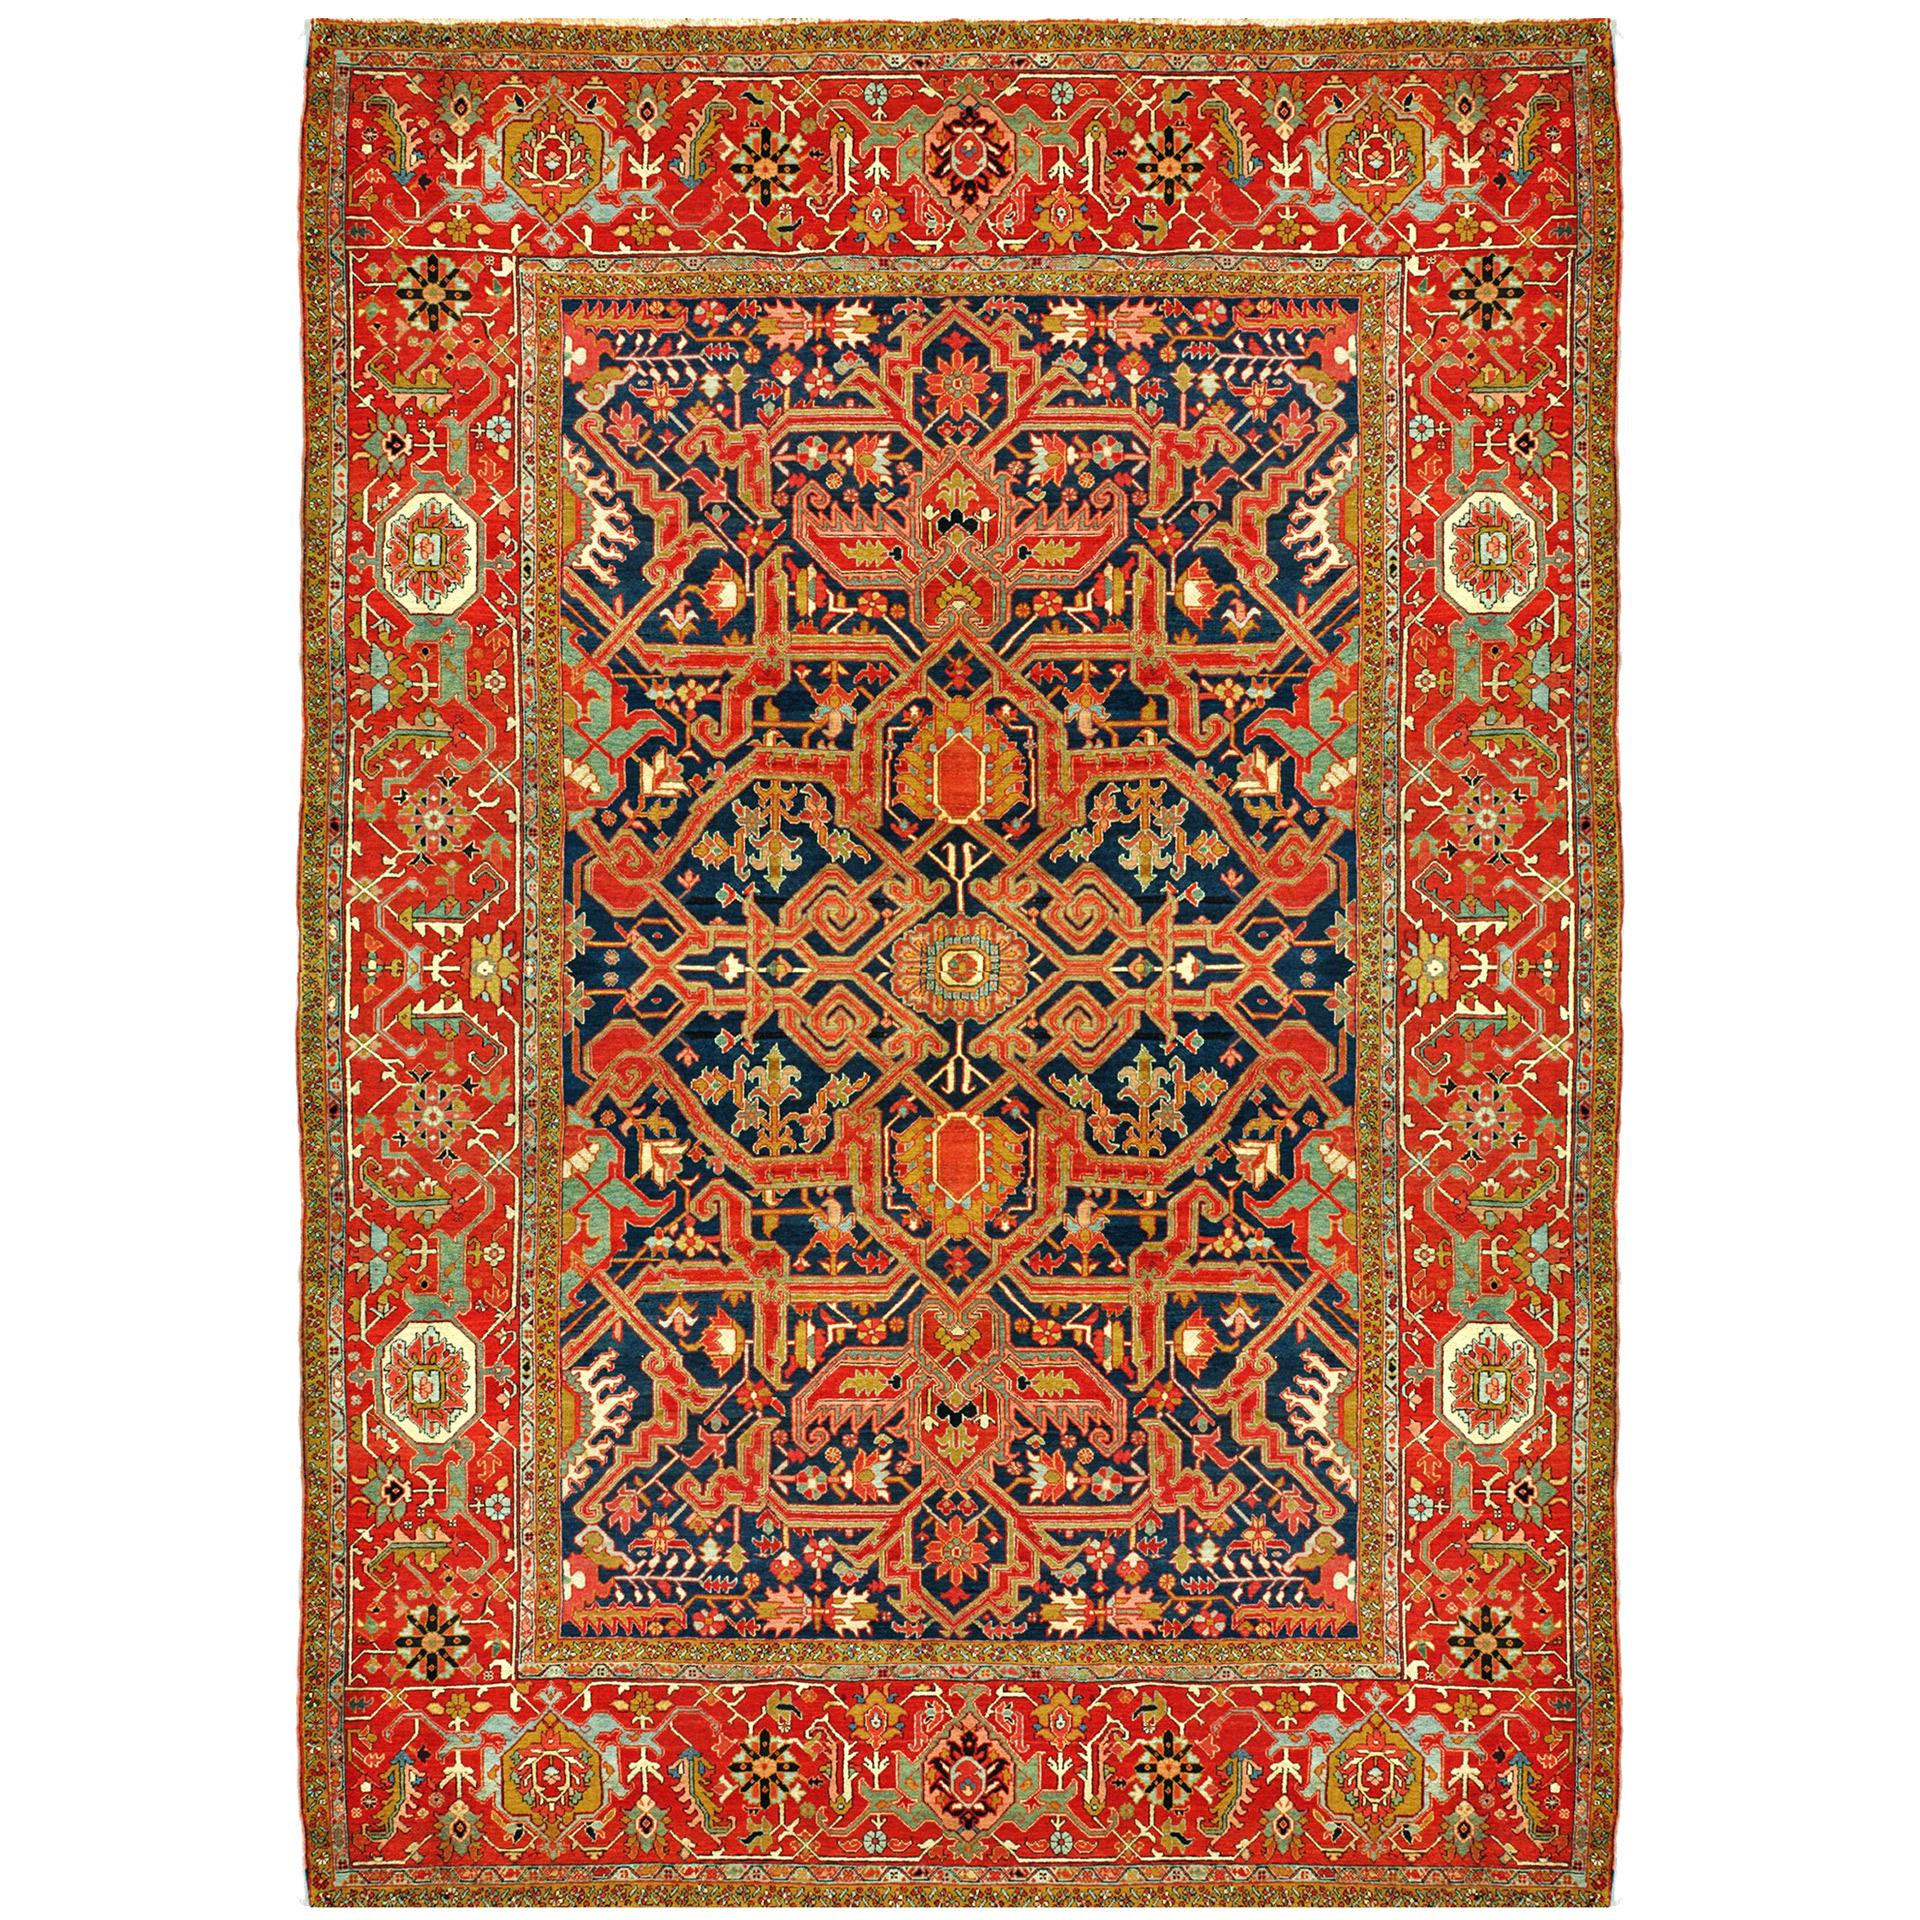 Antique Heriz Serapi carpet with a Split Arabesque design on a navy field, framed by a beautifully drawn red Turtle border